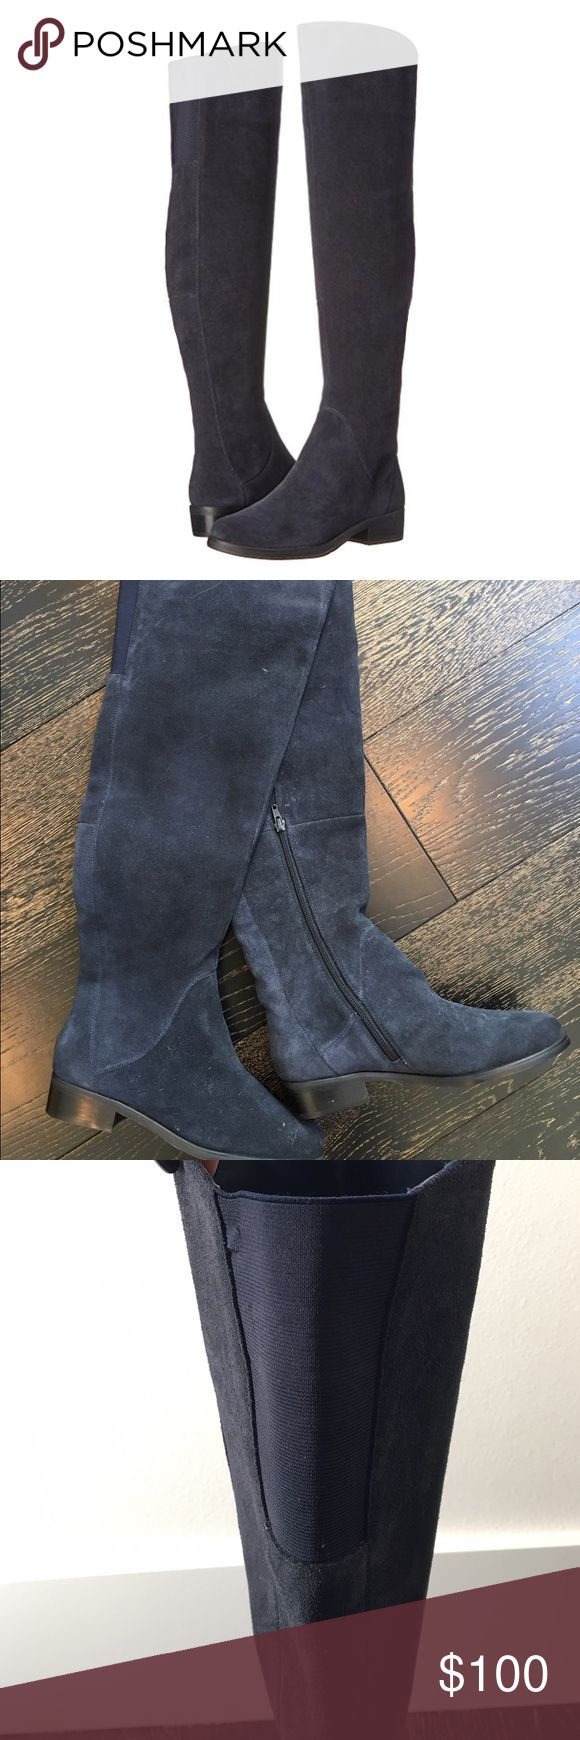 """STEVEN by Steve Madden Over The Knee Boots 'Salley' over the knee riding boot by Steve Madden in beautiful navy suede. 16.5"""" opening circumference with stretch panel on back of knee. Comfortable and stylish-perfect for winter fashion plus they've never been worn! Steven by Steve Madden Shoes Over the Knee Boots"""